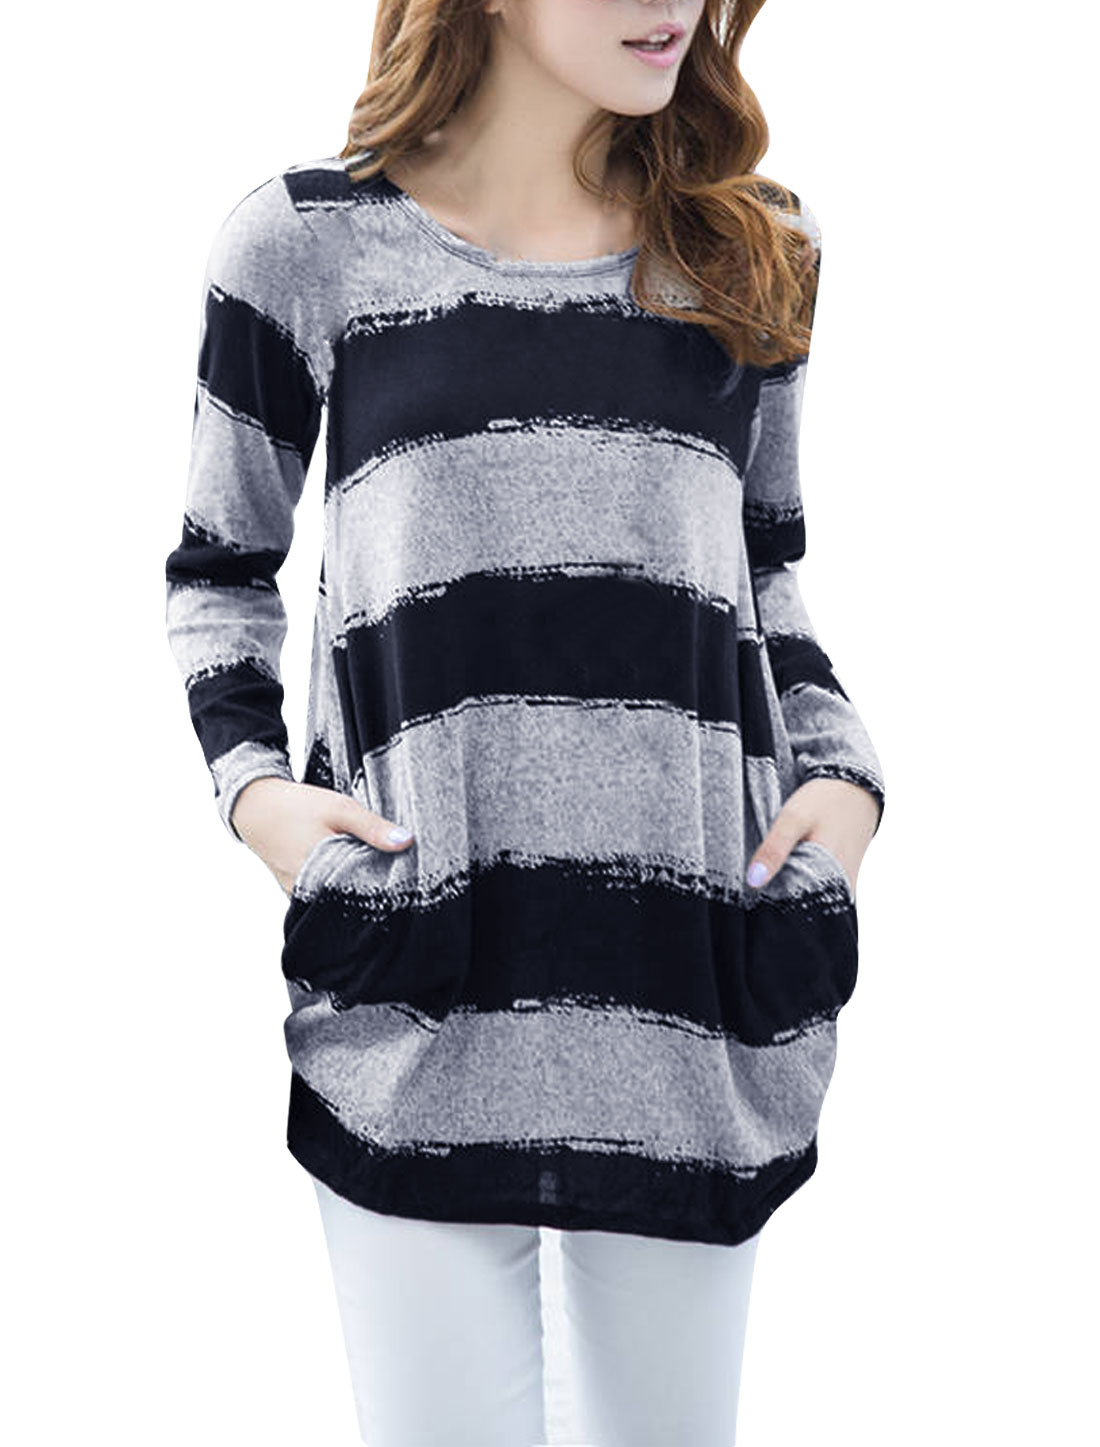 Lady Round Neck Long Sleeve Color Blocking Blue Gray Tunic Knit Shirt S